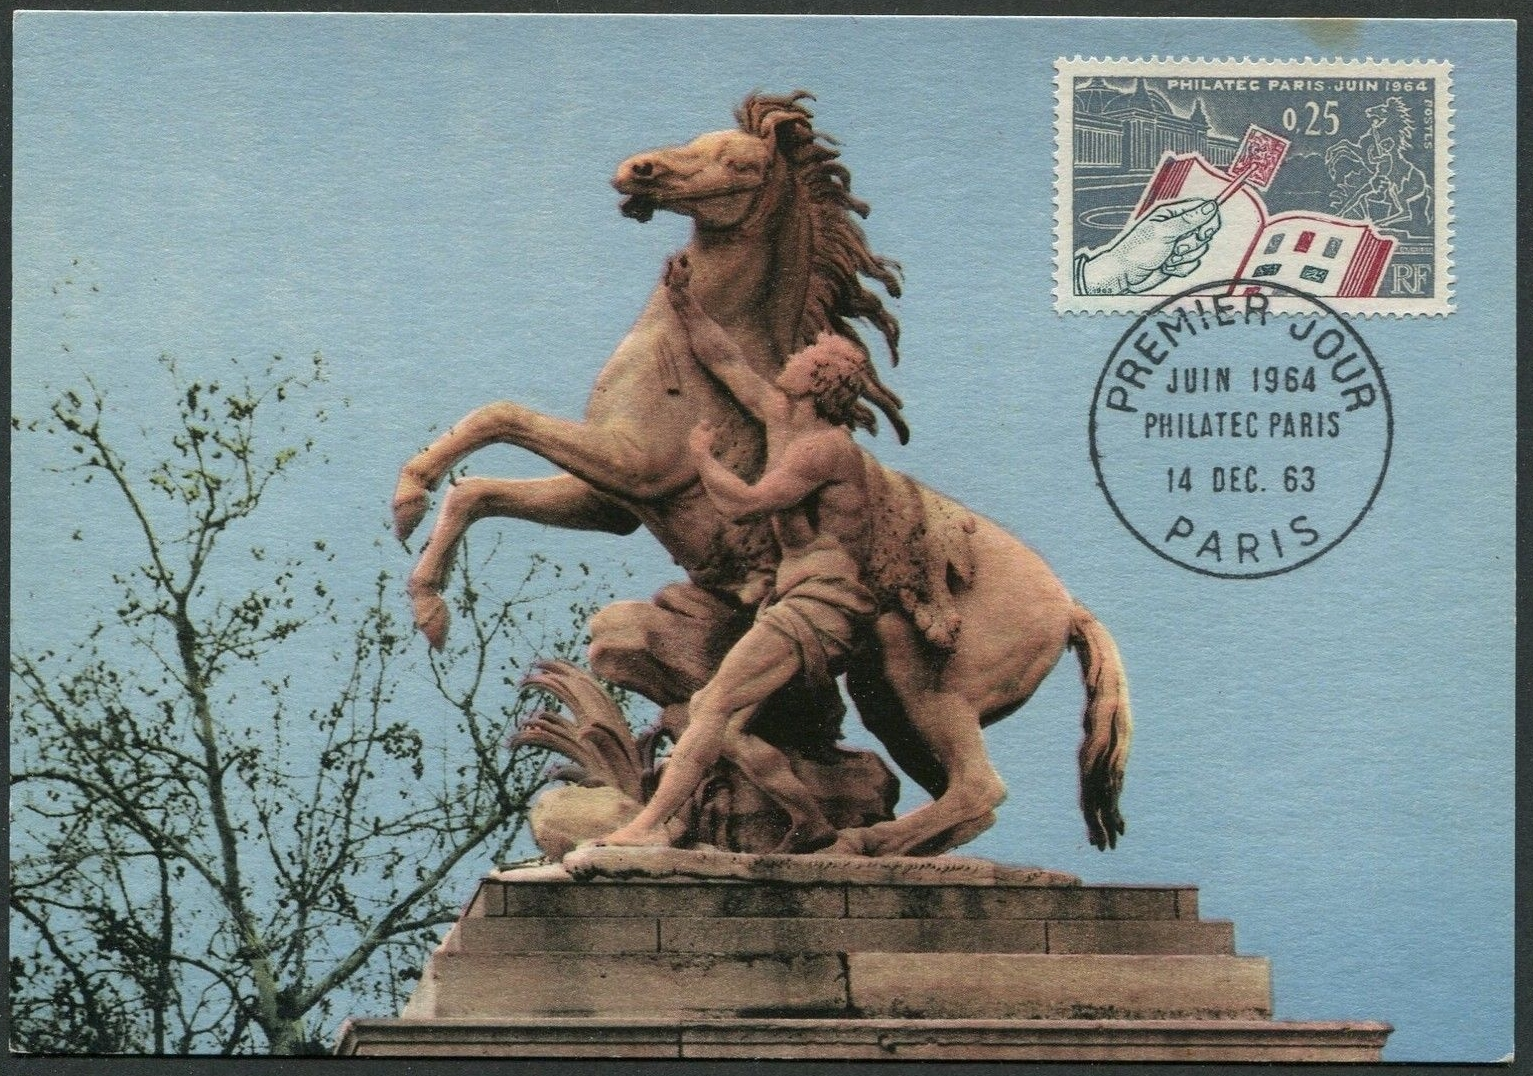 France - Scott #1078 (1963) - first day of issue maximum card picturing one of the Horses of Marly